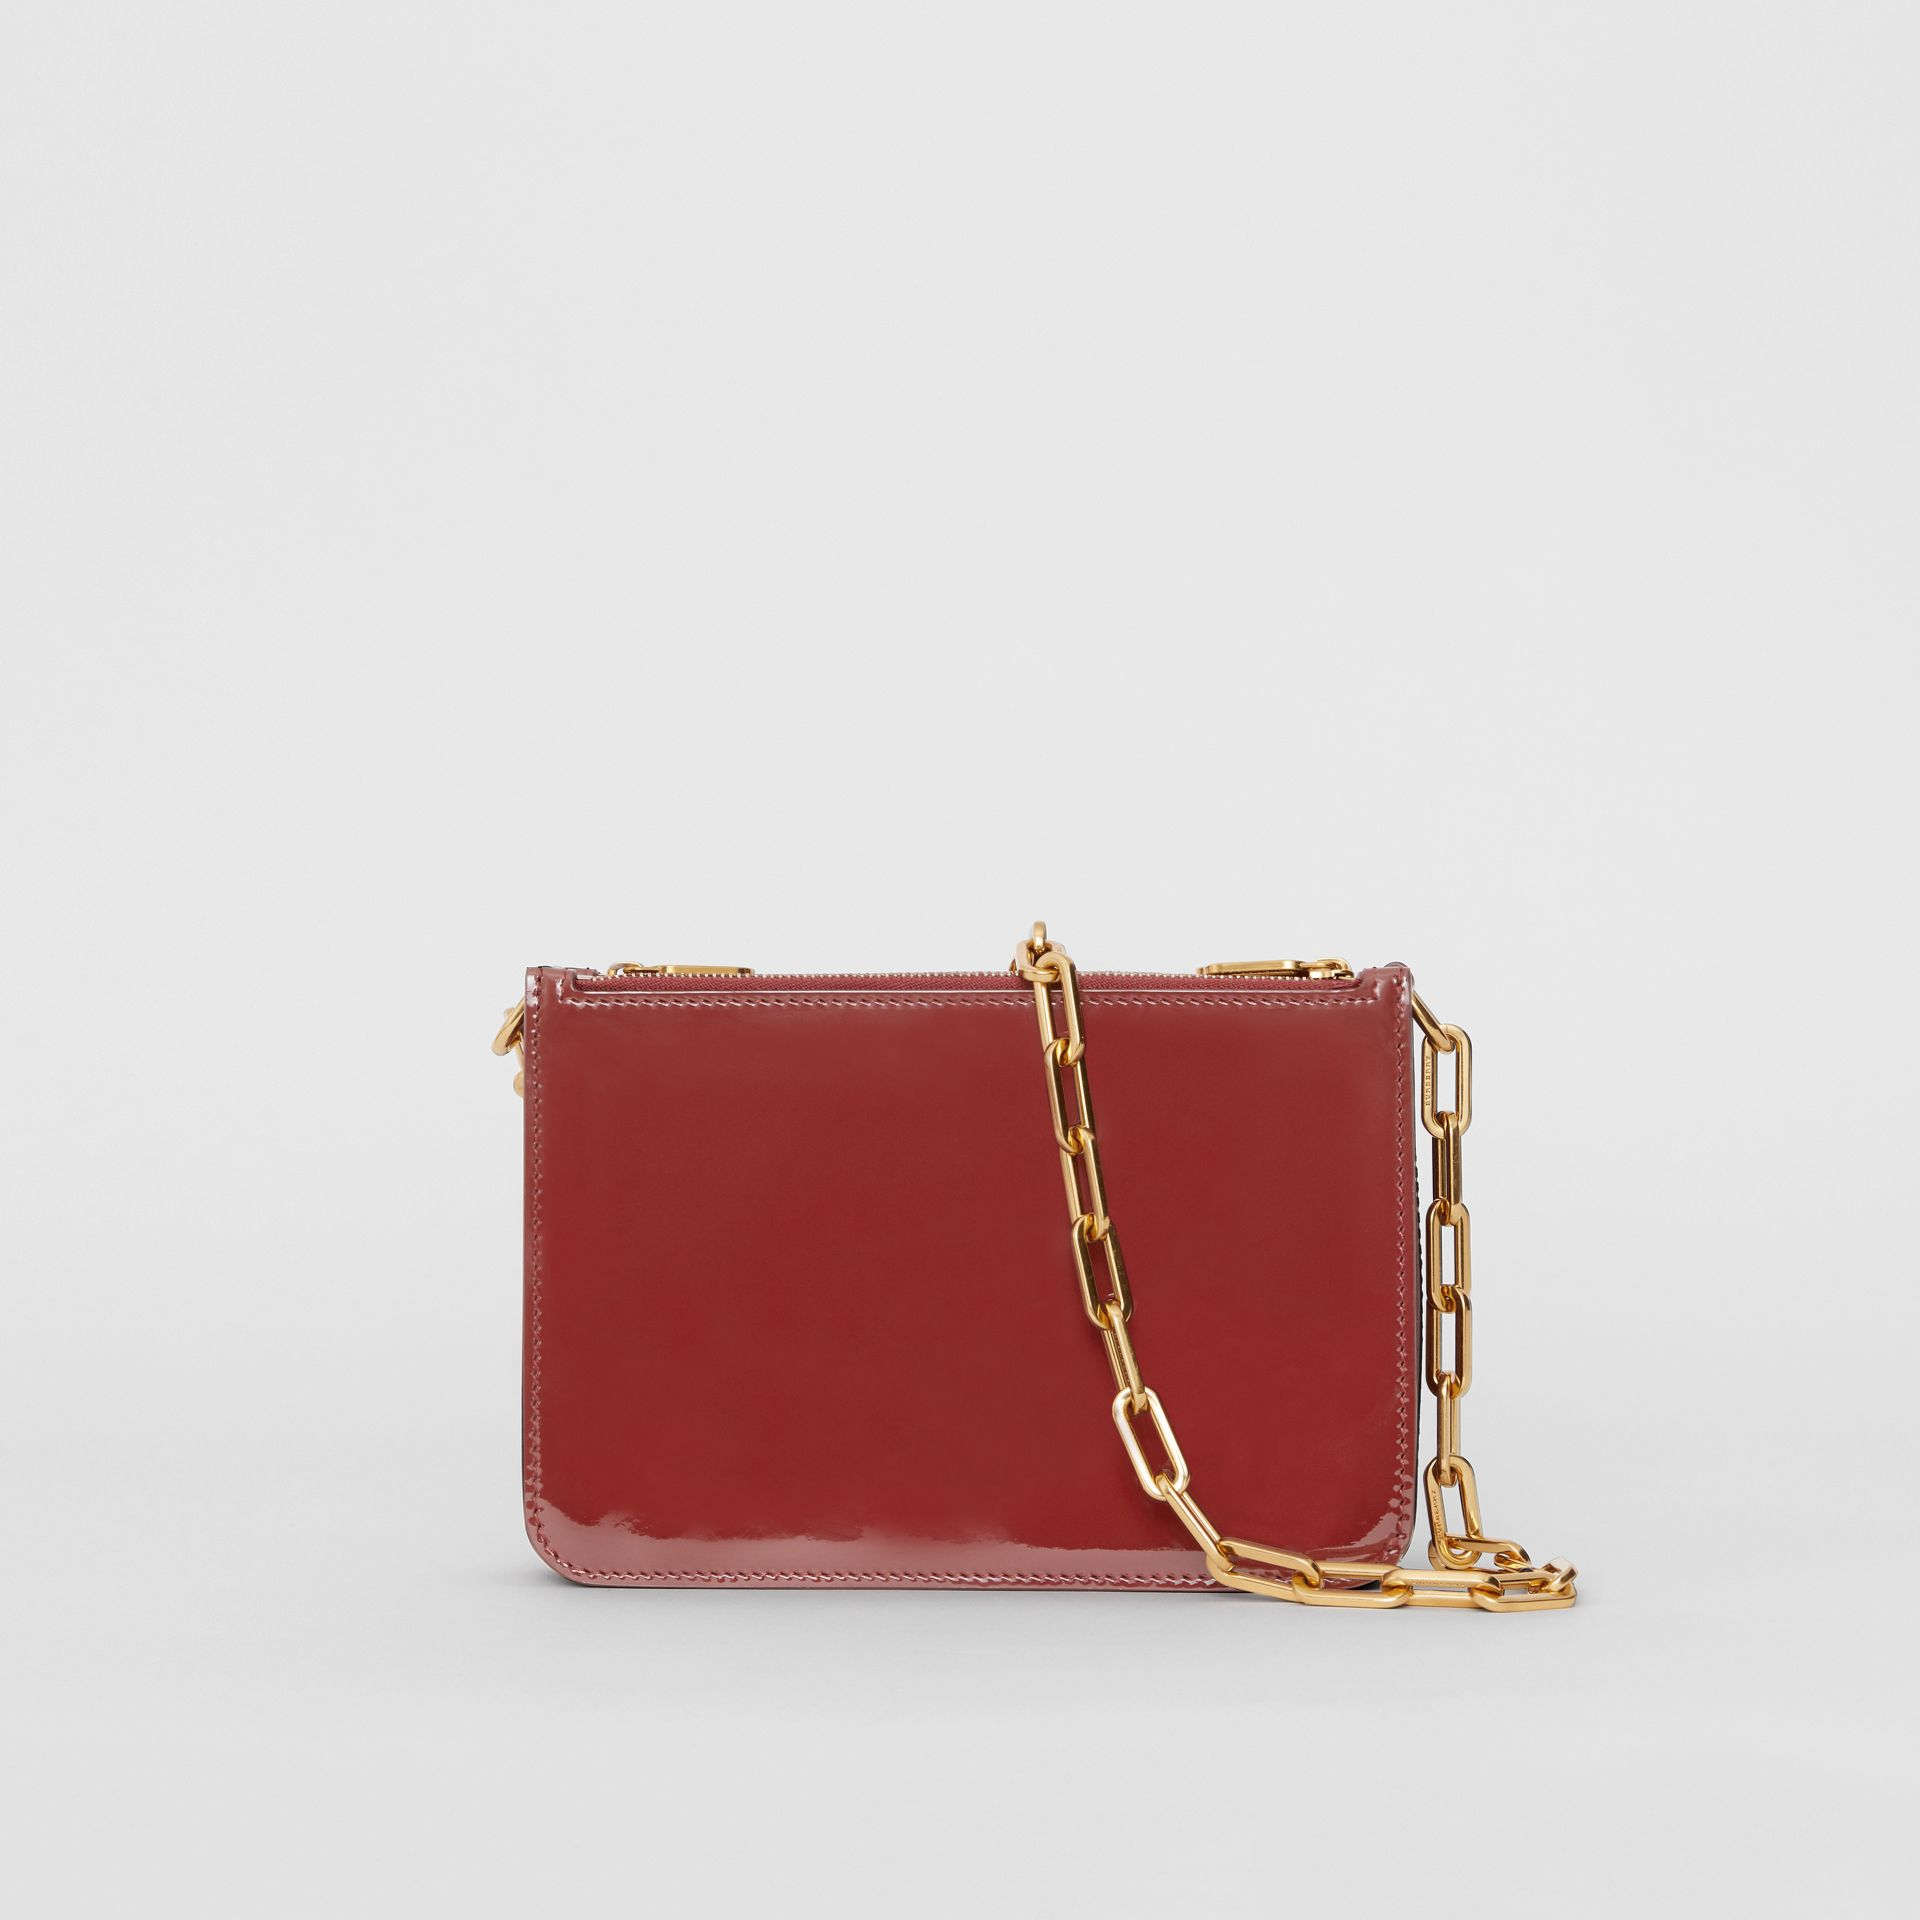 Triple Zip Patent Leather Crossbody Bag in Crimson - Women | Burberry - gallery image 7